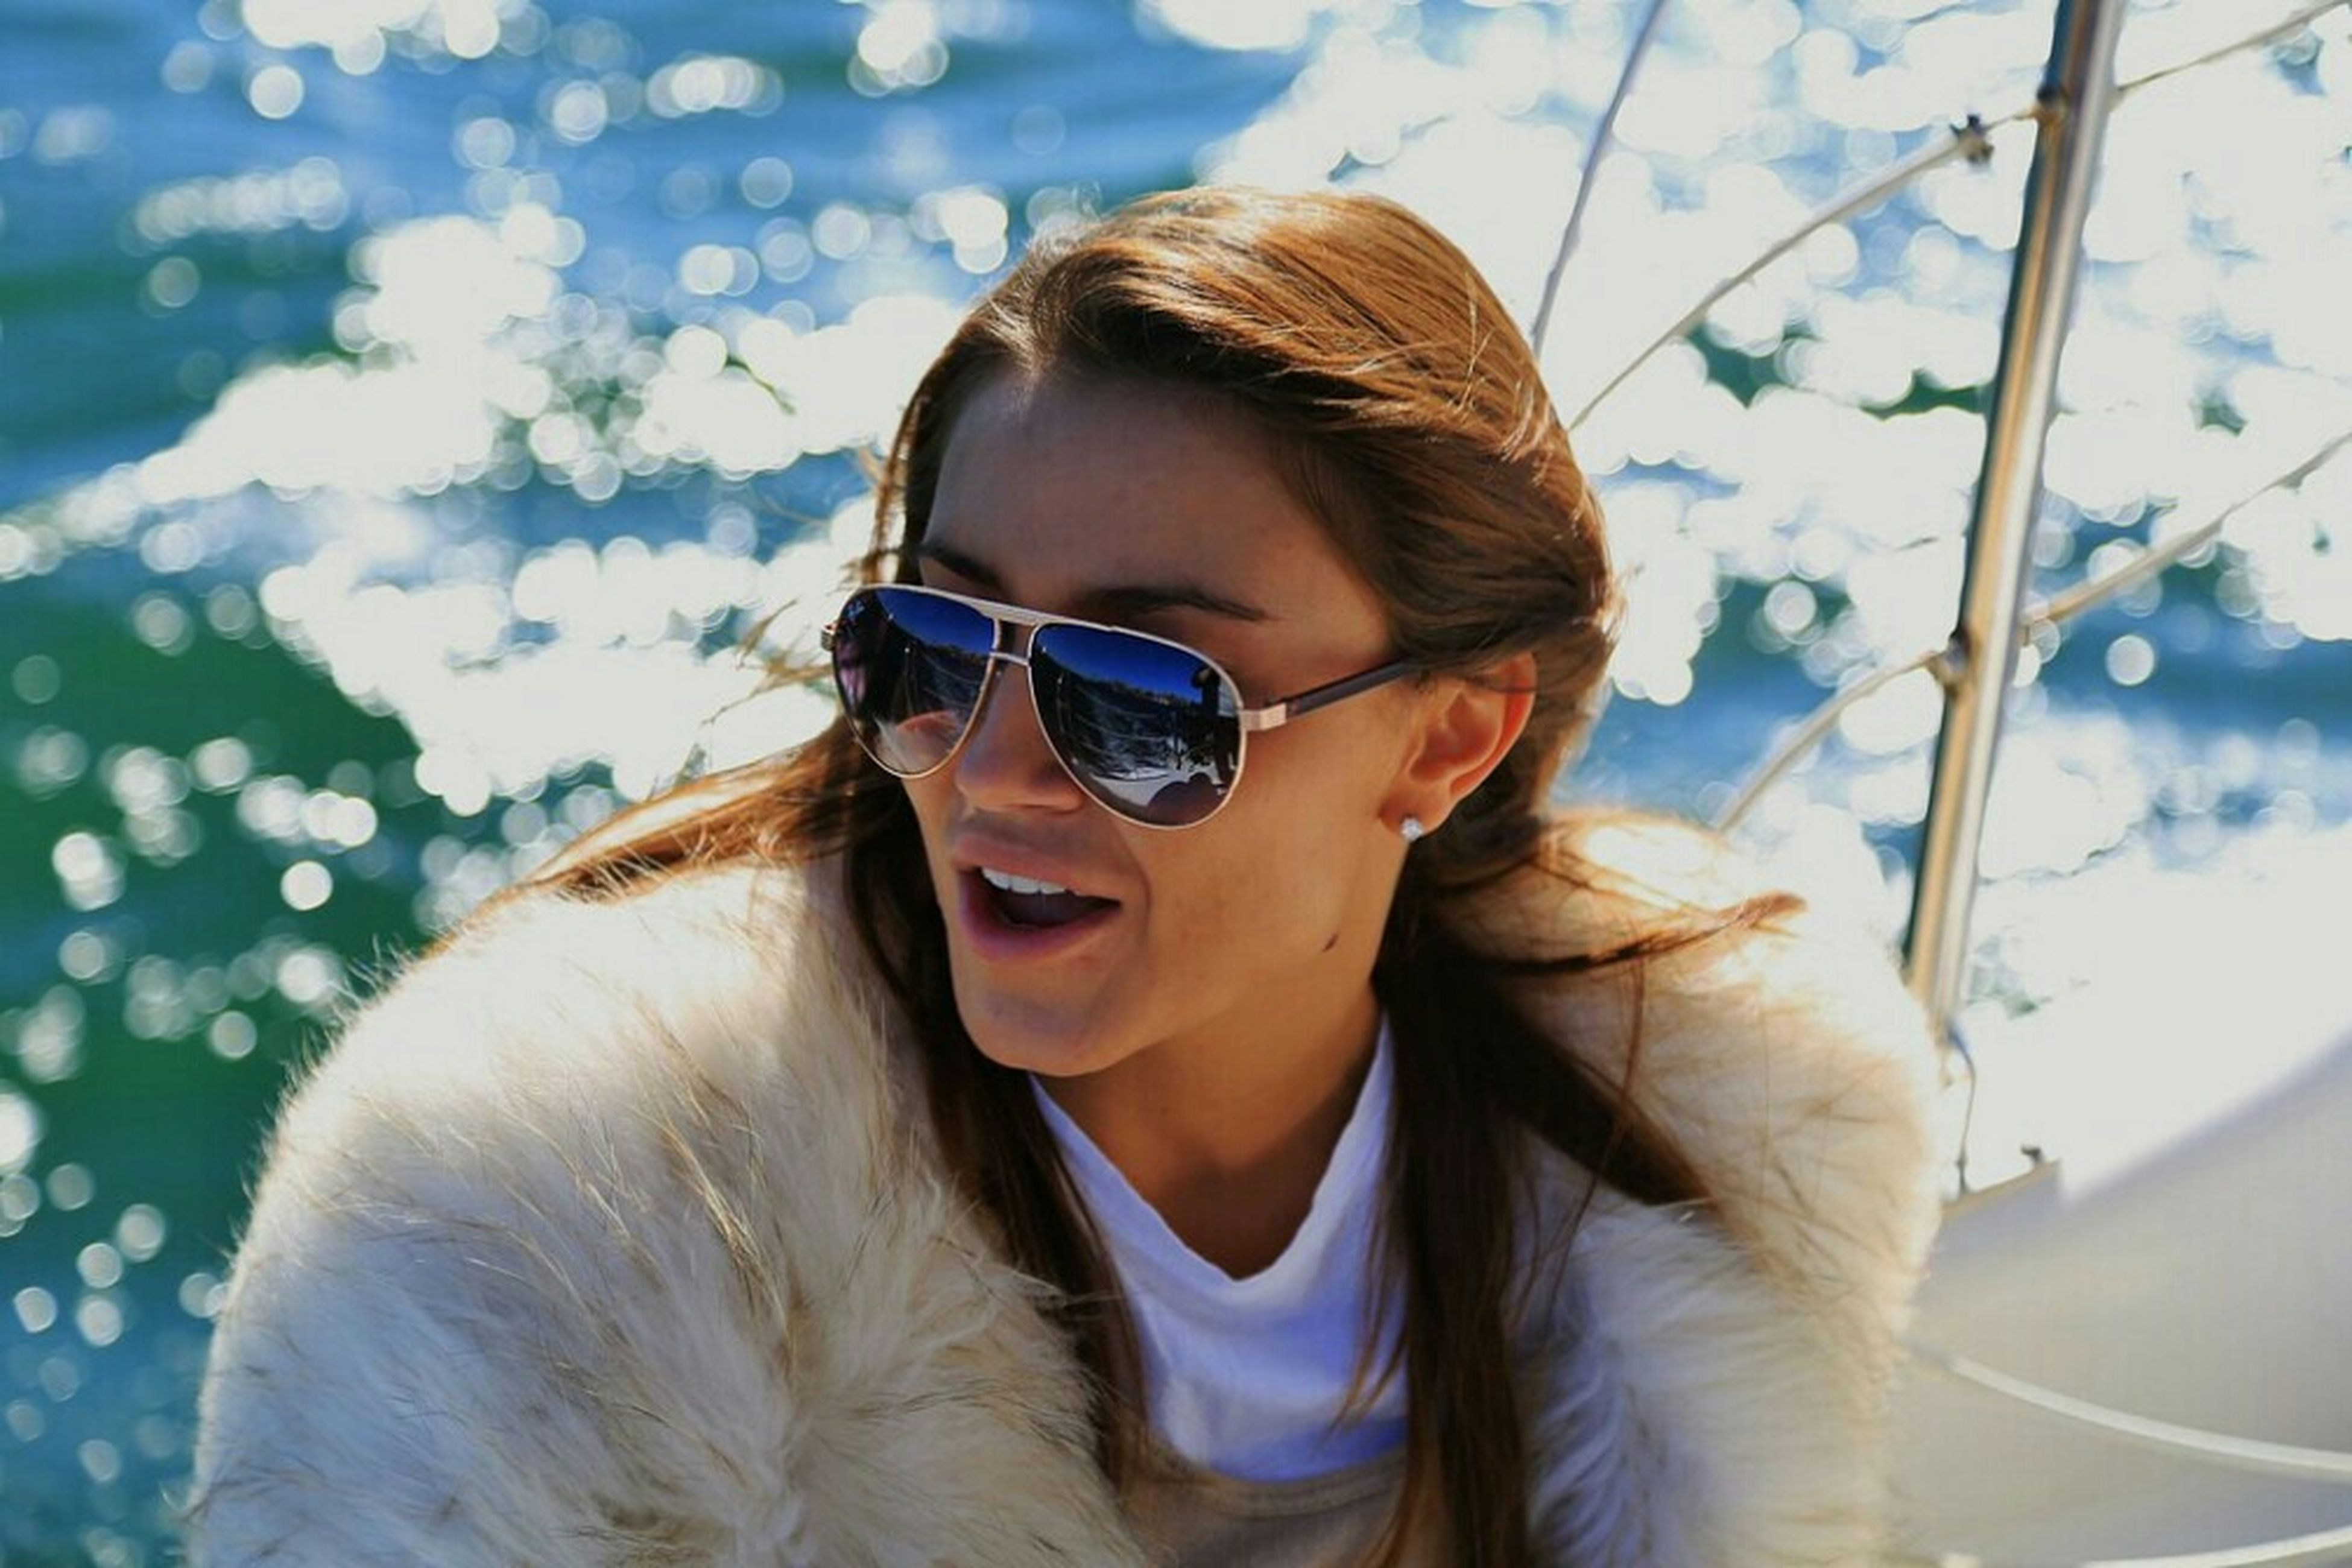 person, young adult, lifestyles, leisure activity, portrait, young women, looking at camera, headshot, sunglasses, smiling, focus on foreground, one animal, animal themes, front view, casual clothing, pets, long hair